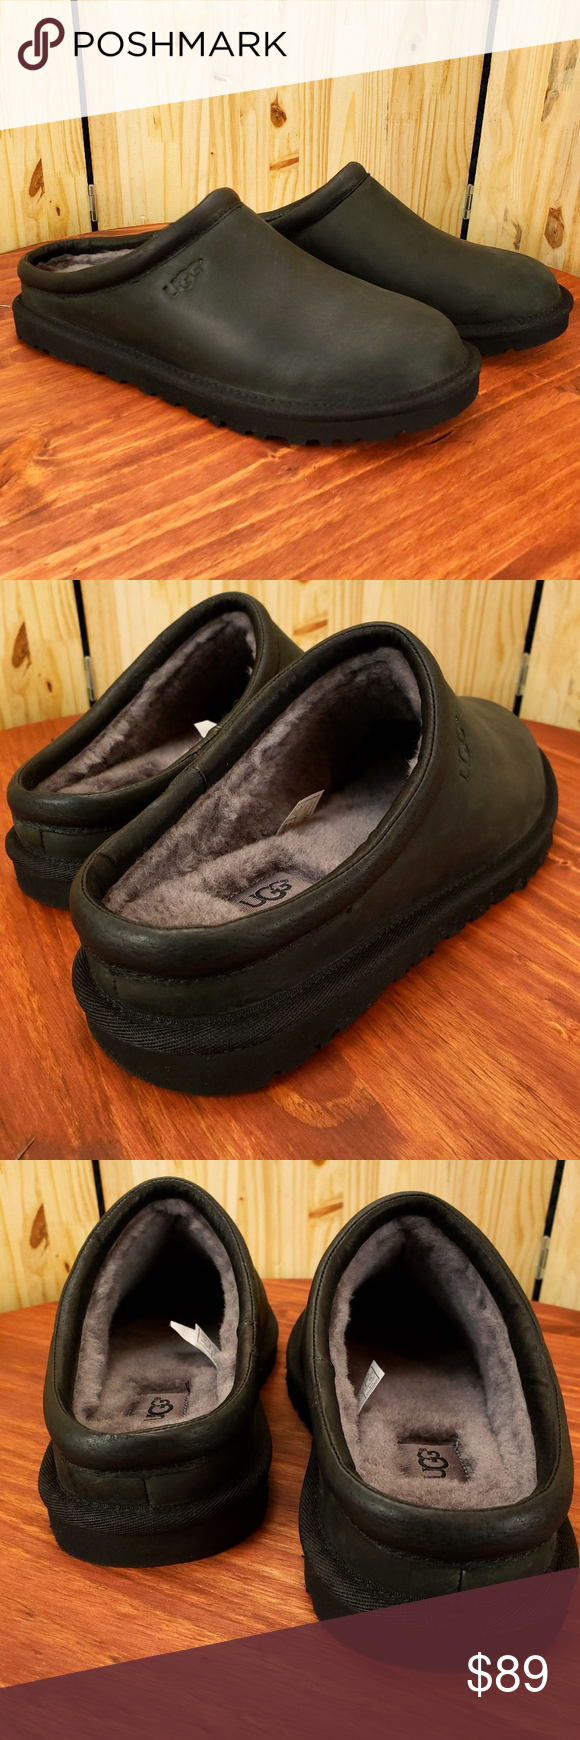 4a5dd55c6fe UGG Men's Classic Clog Slipper Shoes Brand new without box. Never ...